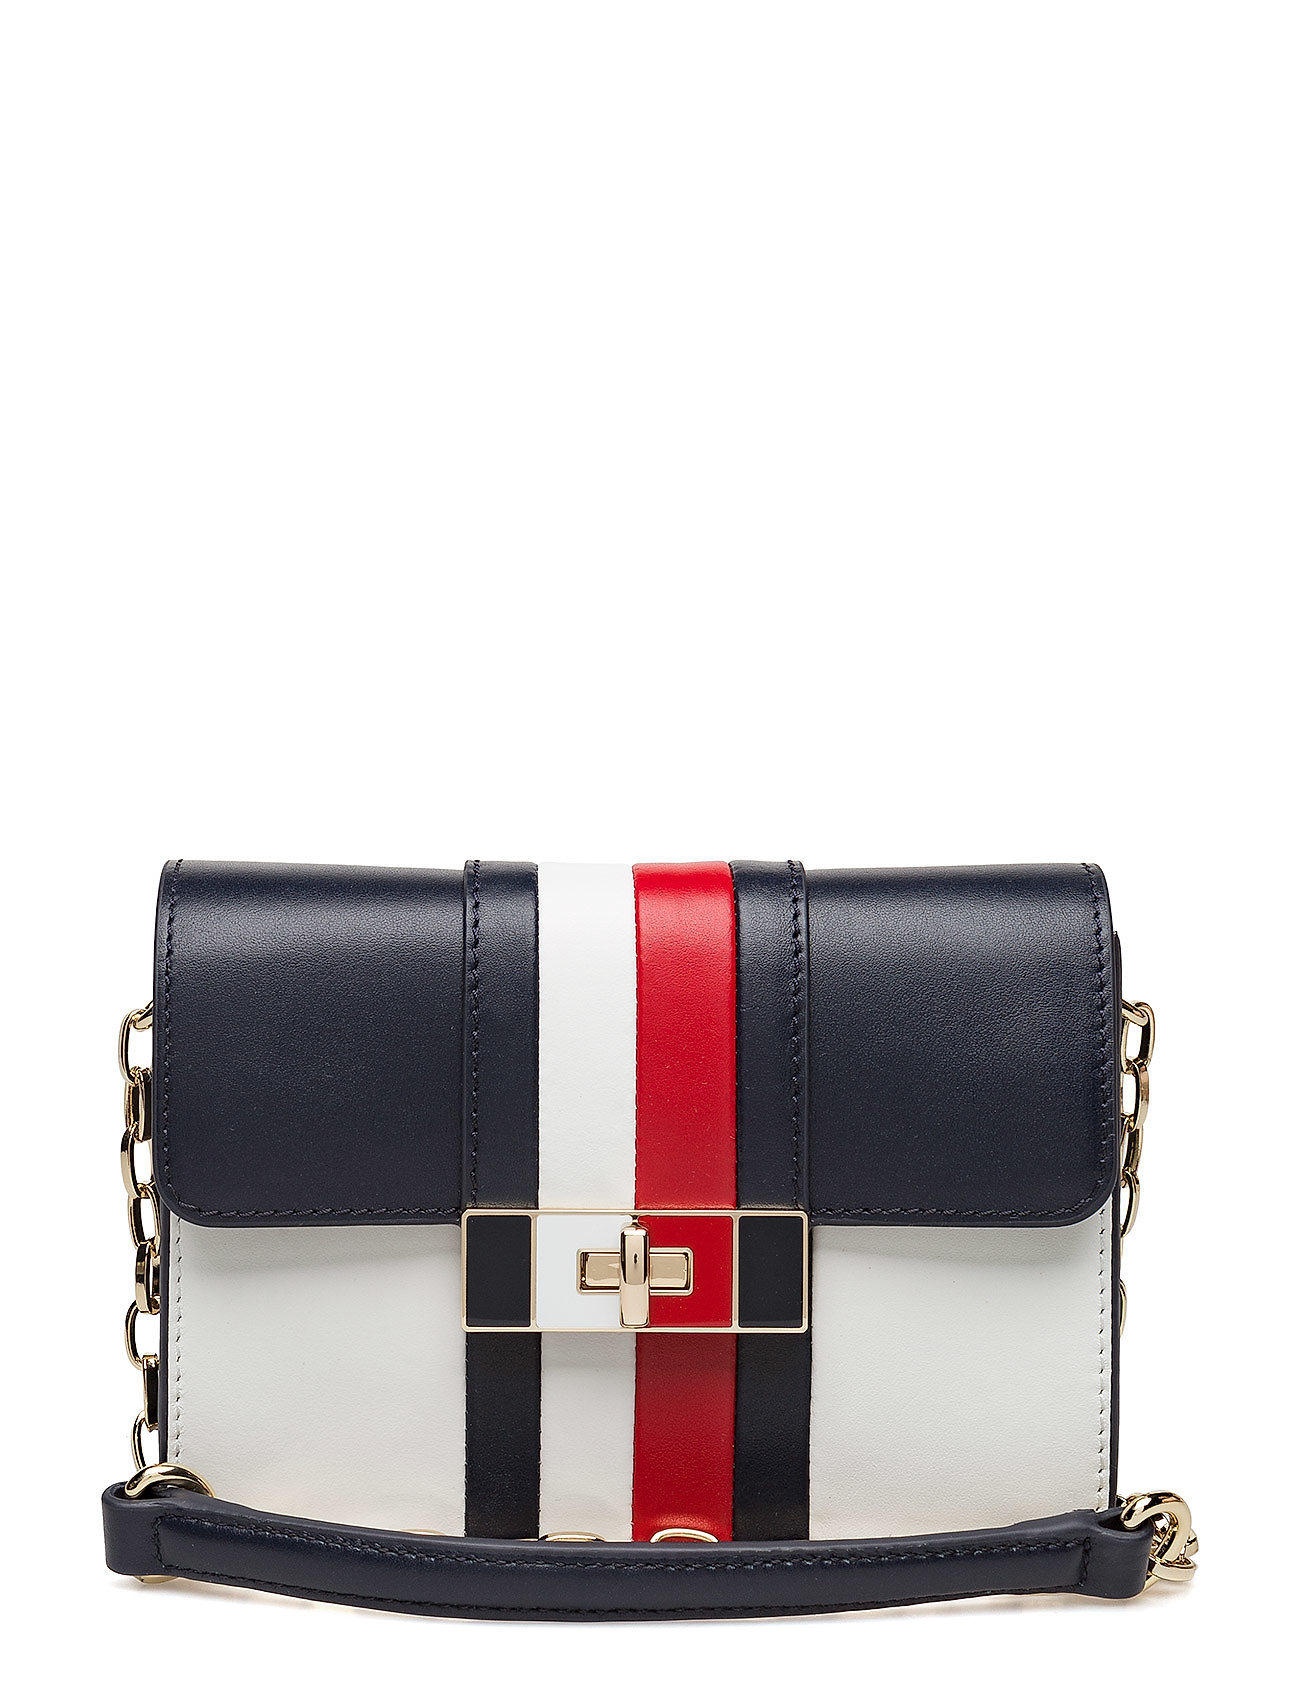 Tommy Hilfiger Laukut Miehet : Corporate lock leath cb tommy